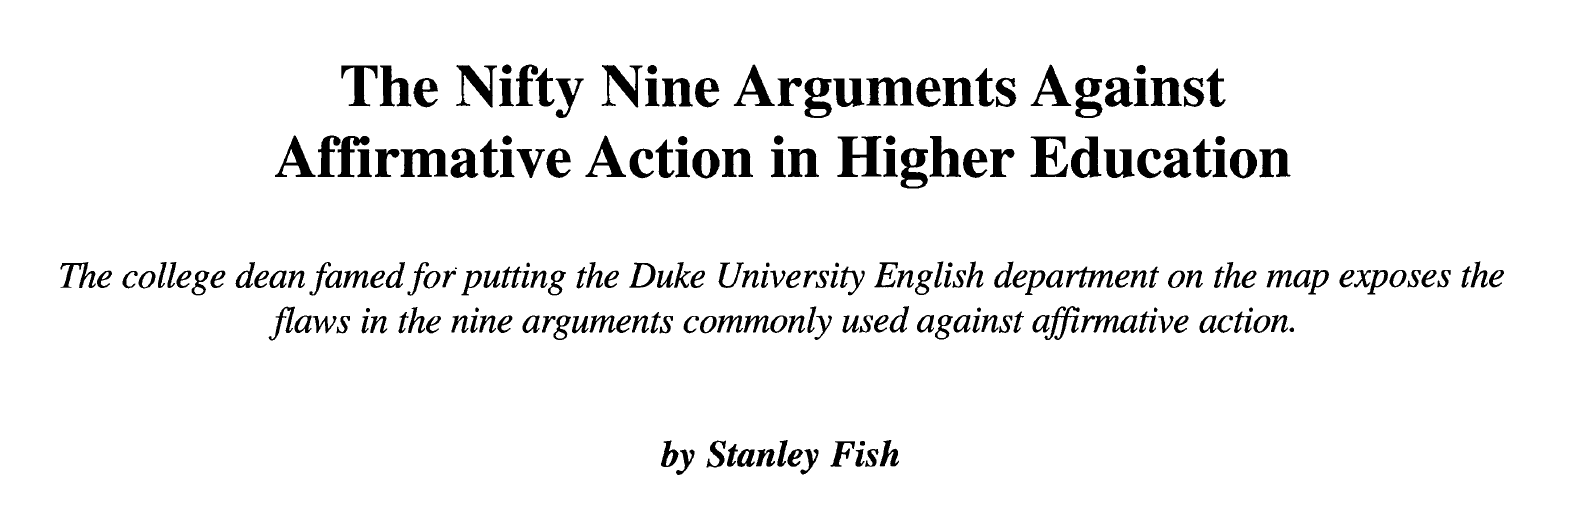 an argument against affirmation action The purpose of this essay will be to make an effective argument against the practice of affirmative action using ethical theories, perspectives and logical arguments.